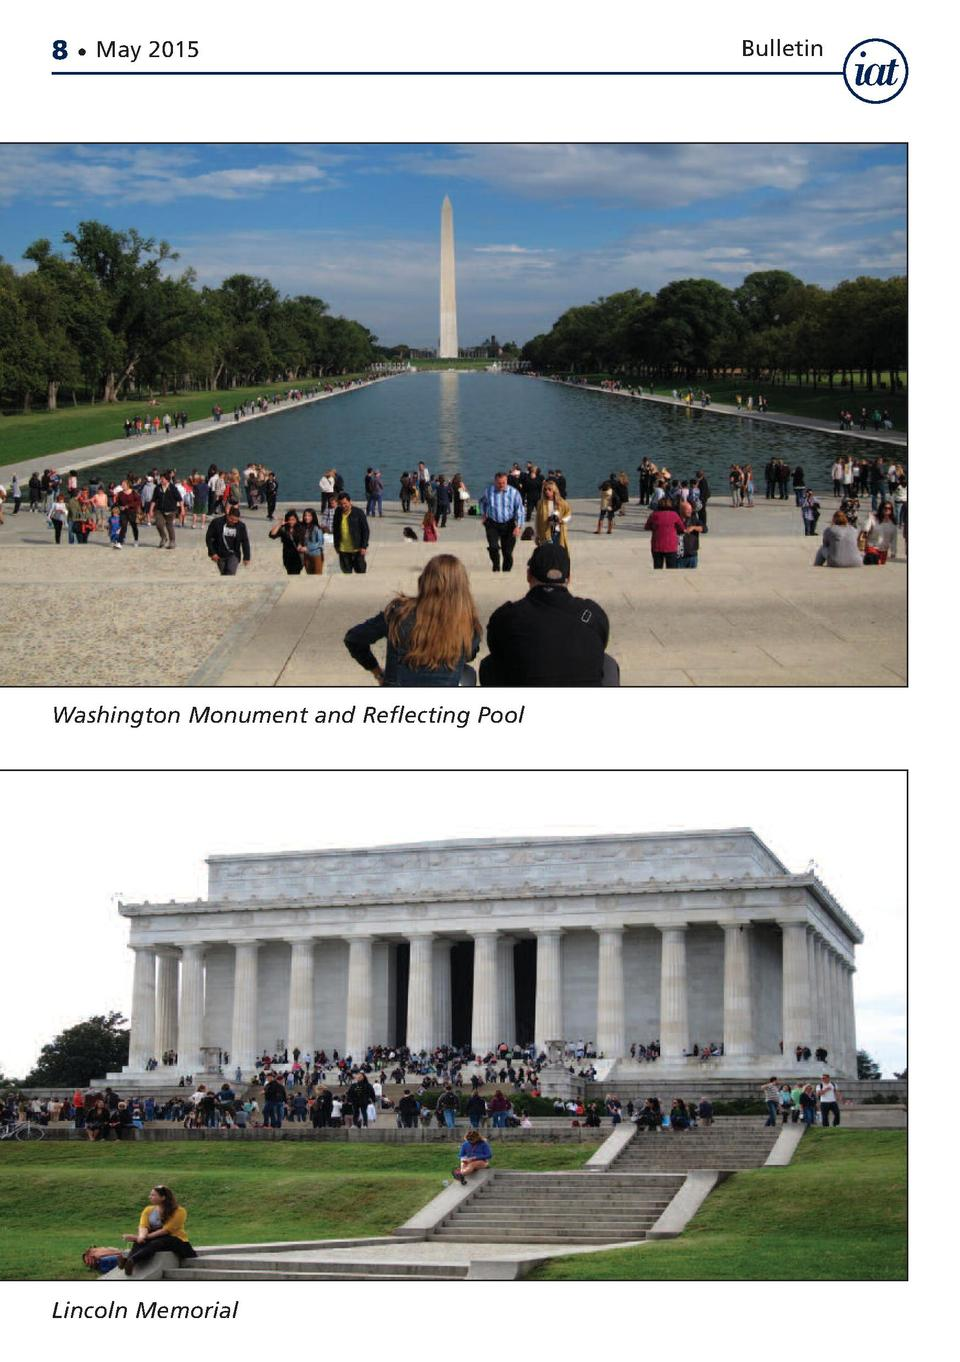 8     May 2015  Washington Monument and Reflecting Pool  Lincoln Memorial  Bulletin